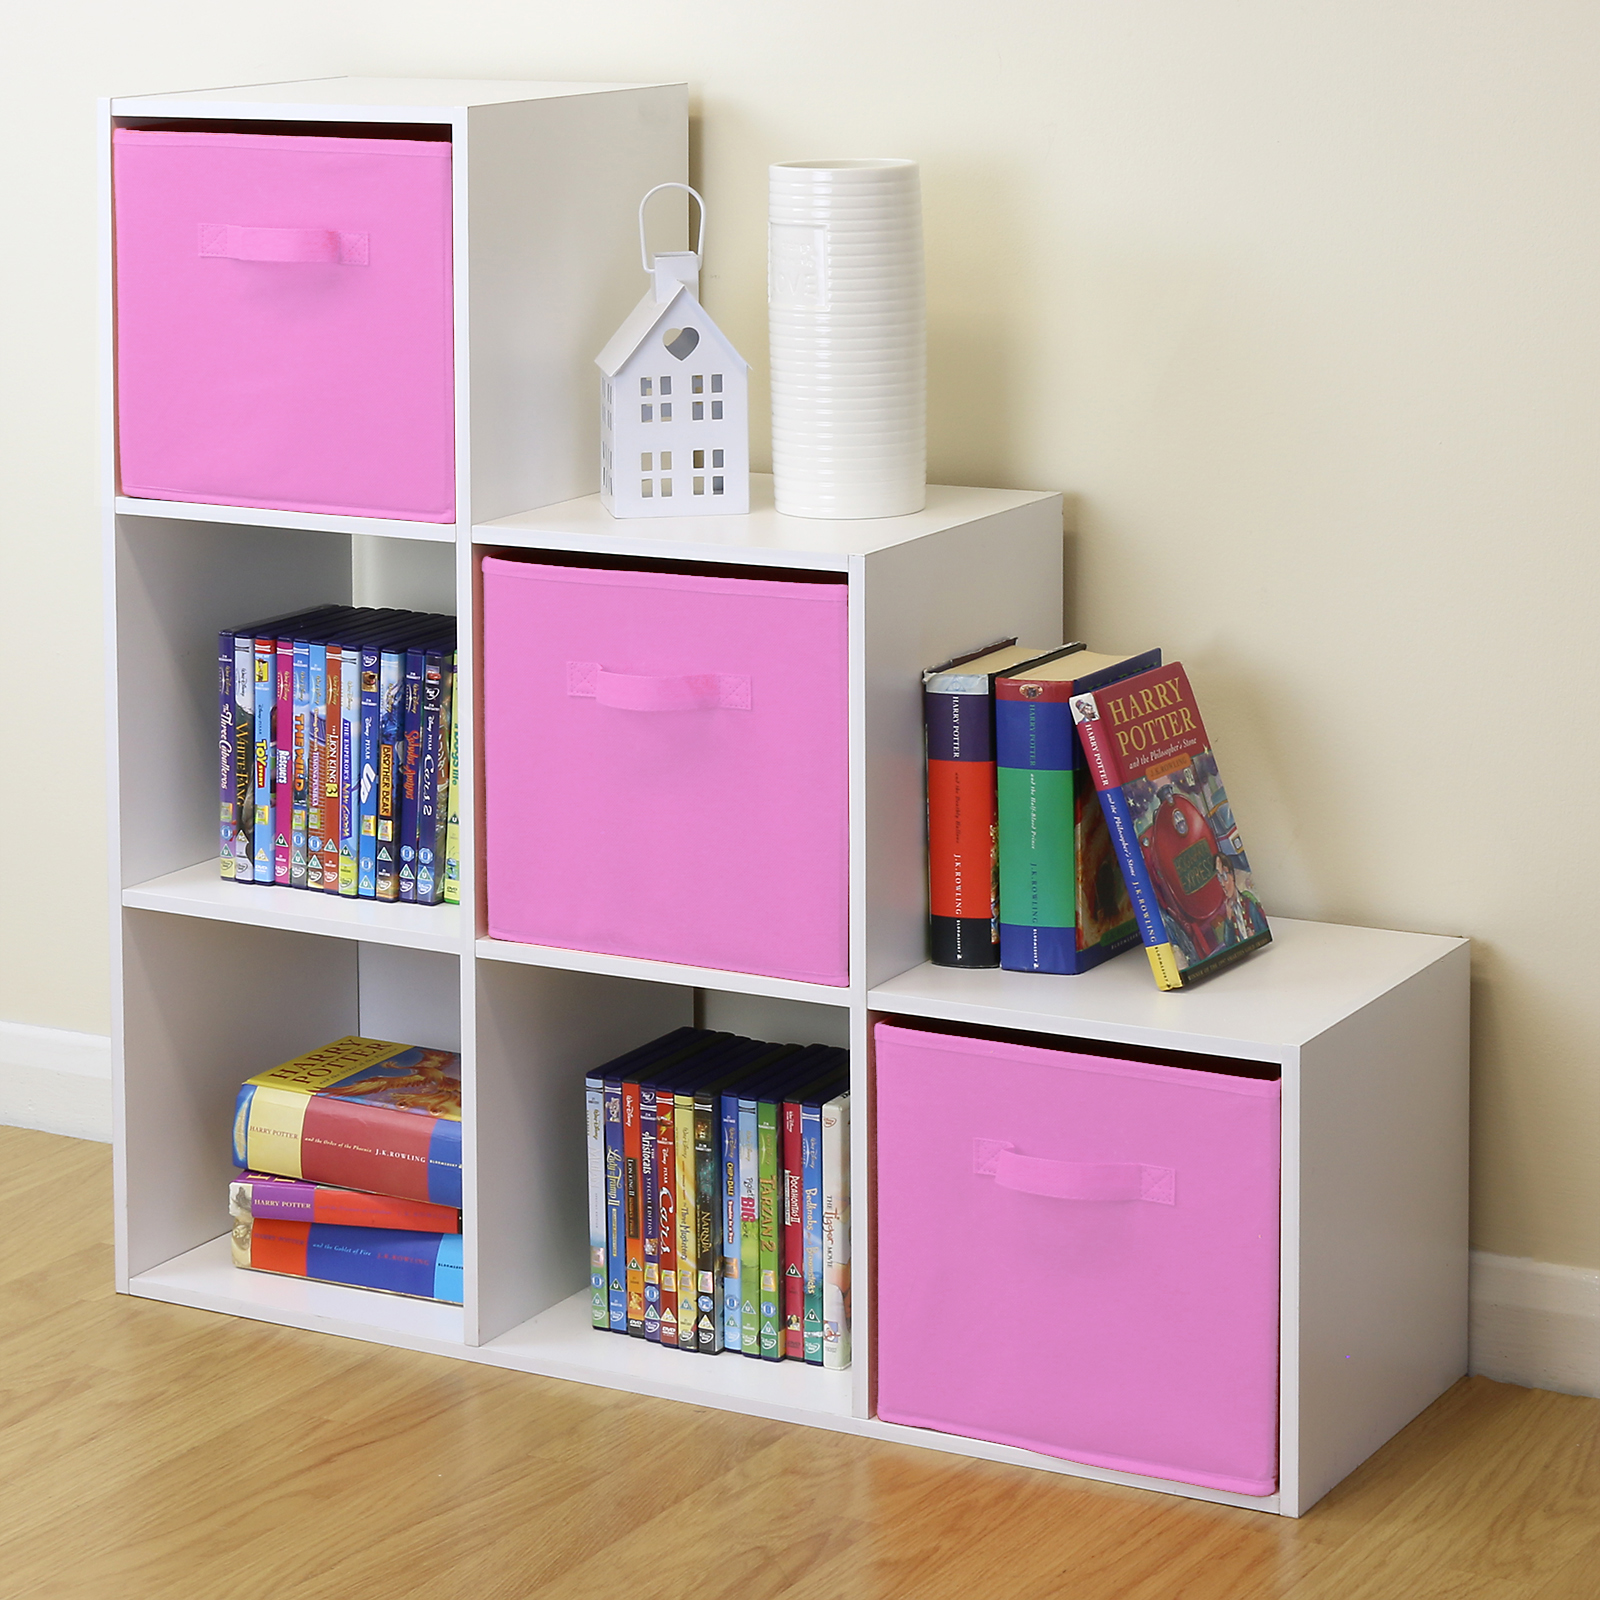 Details About White 6 Cube Kids Toy Storage Unit S Boys Bedroom Shelves 3 Pink Bo